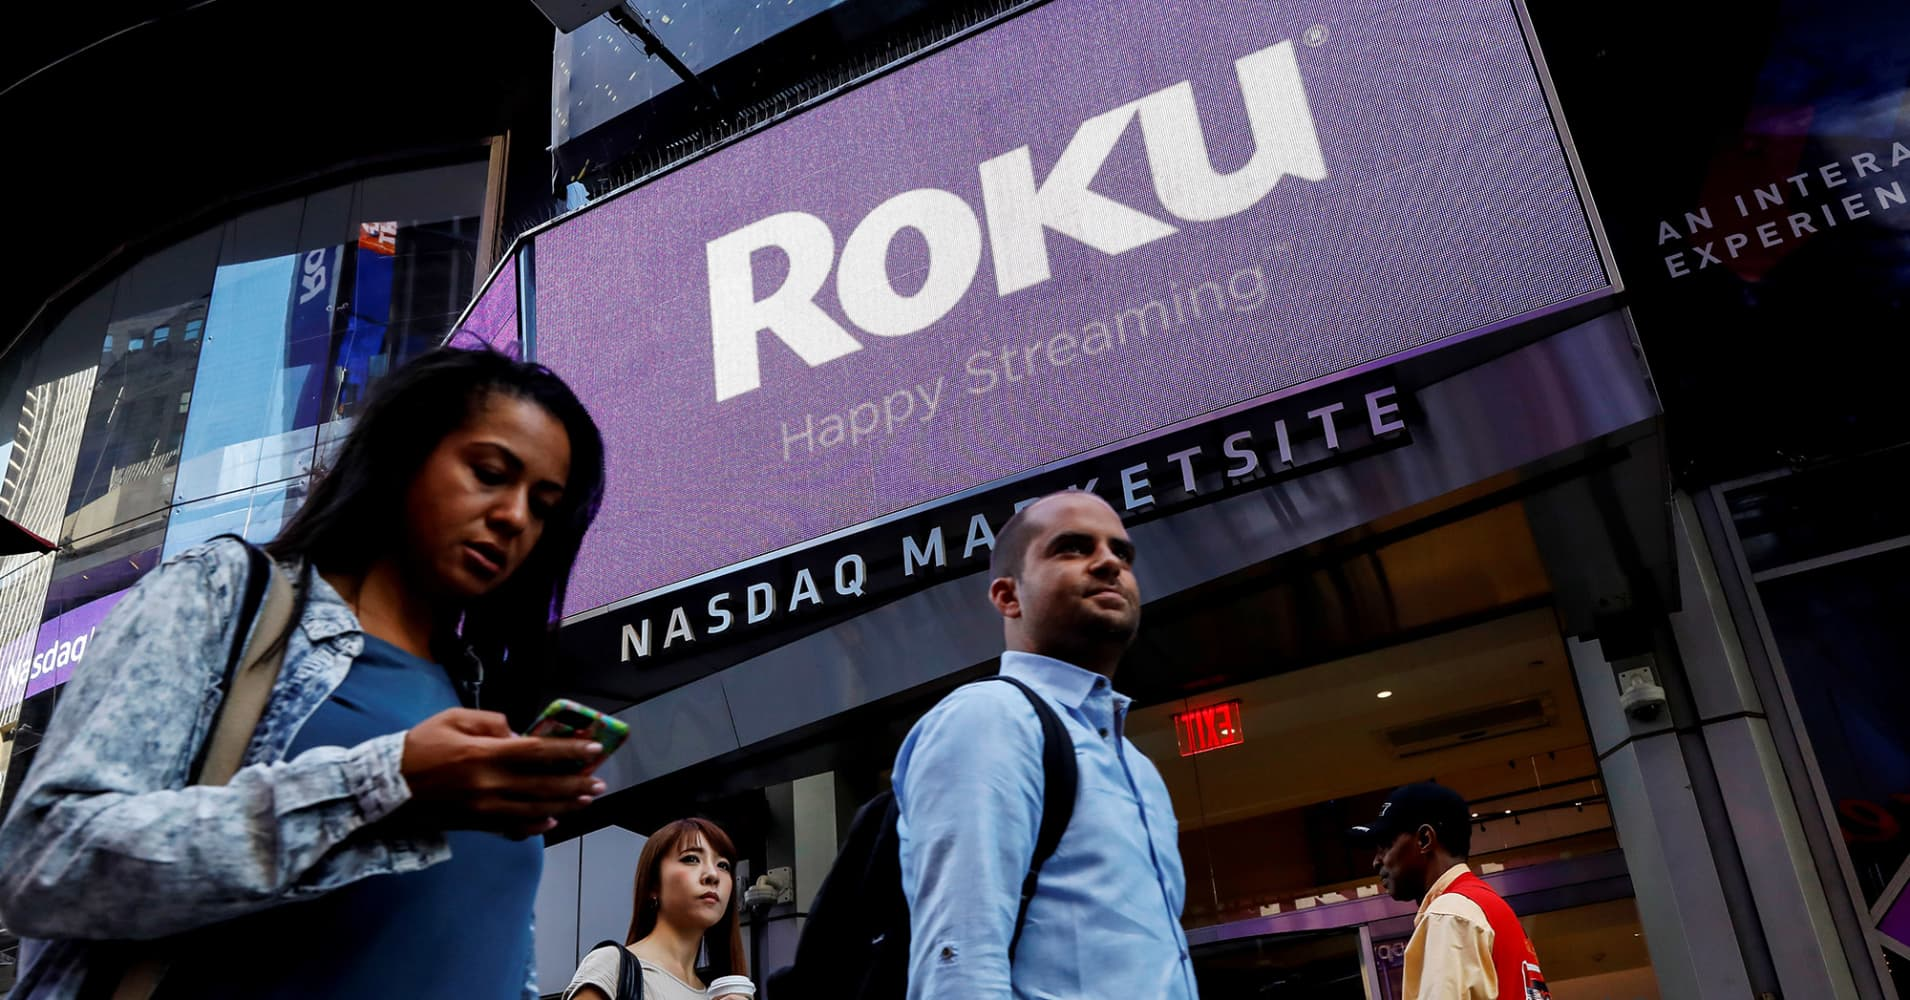 Roku stock has already hit the optimistic target set by an analyst on Monday